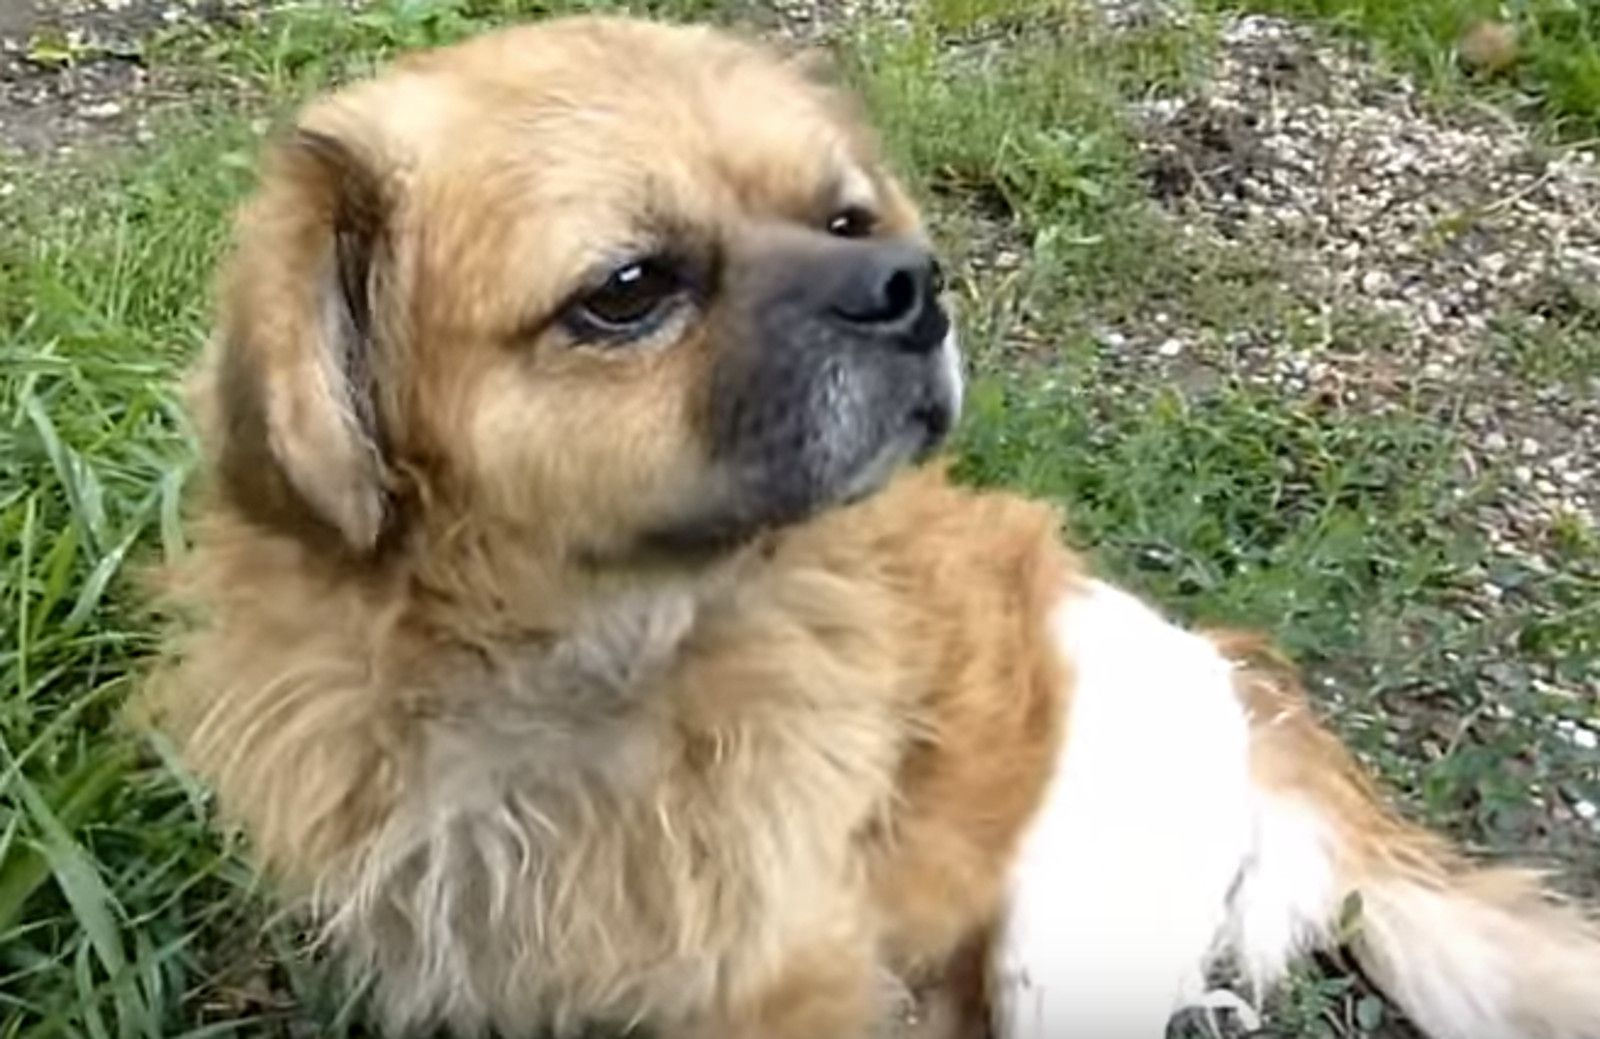 Homeless Dog With Broken Leg Gets Second Chance at Life